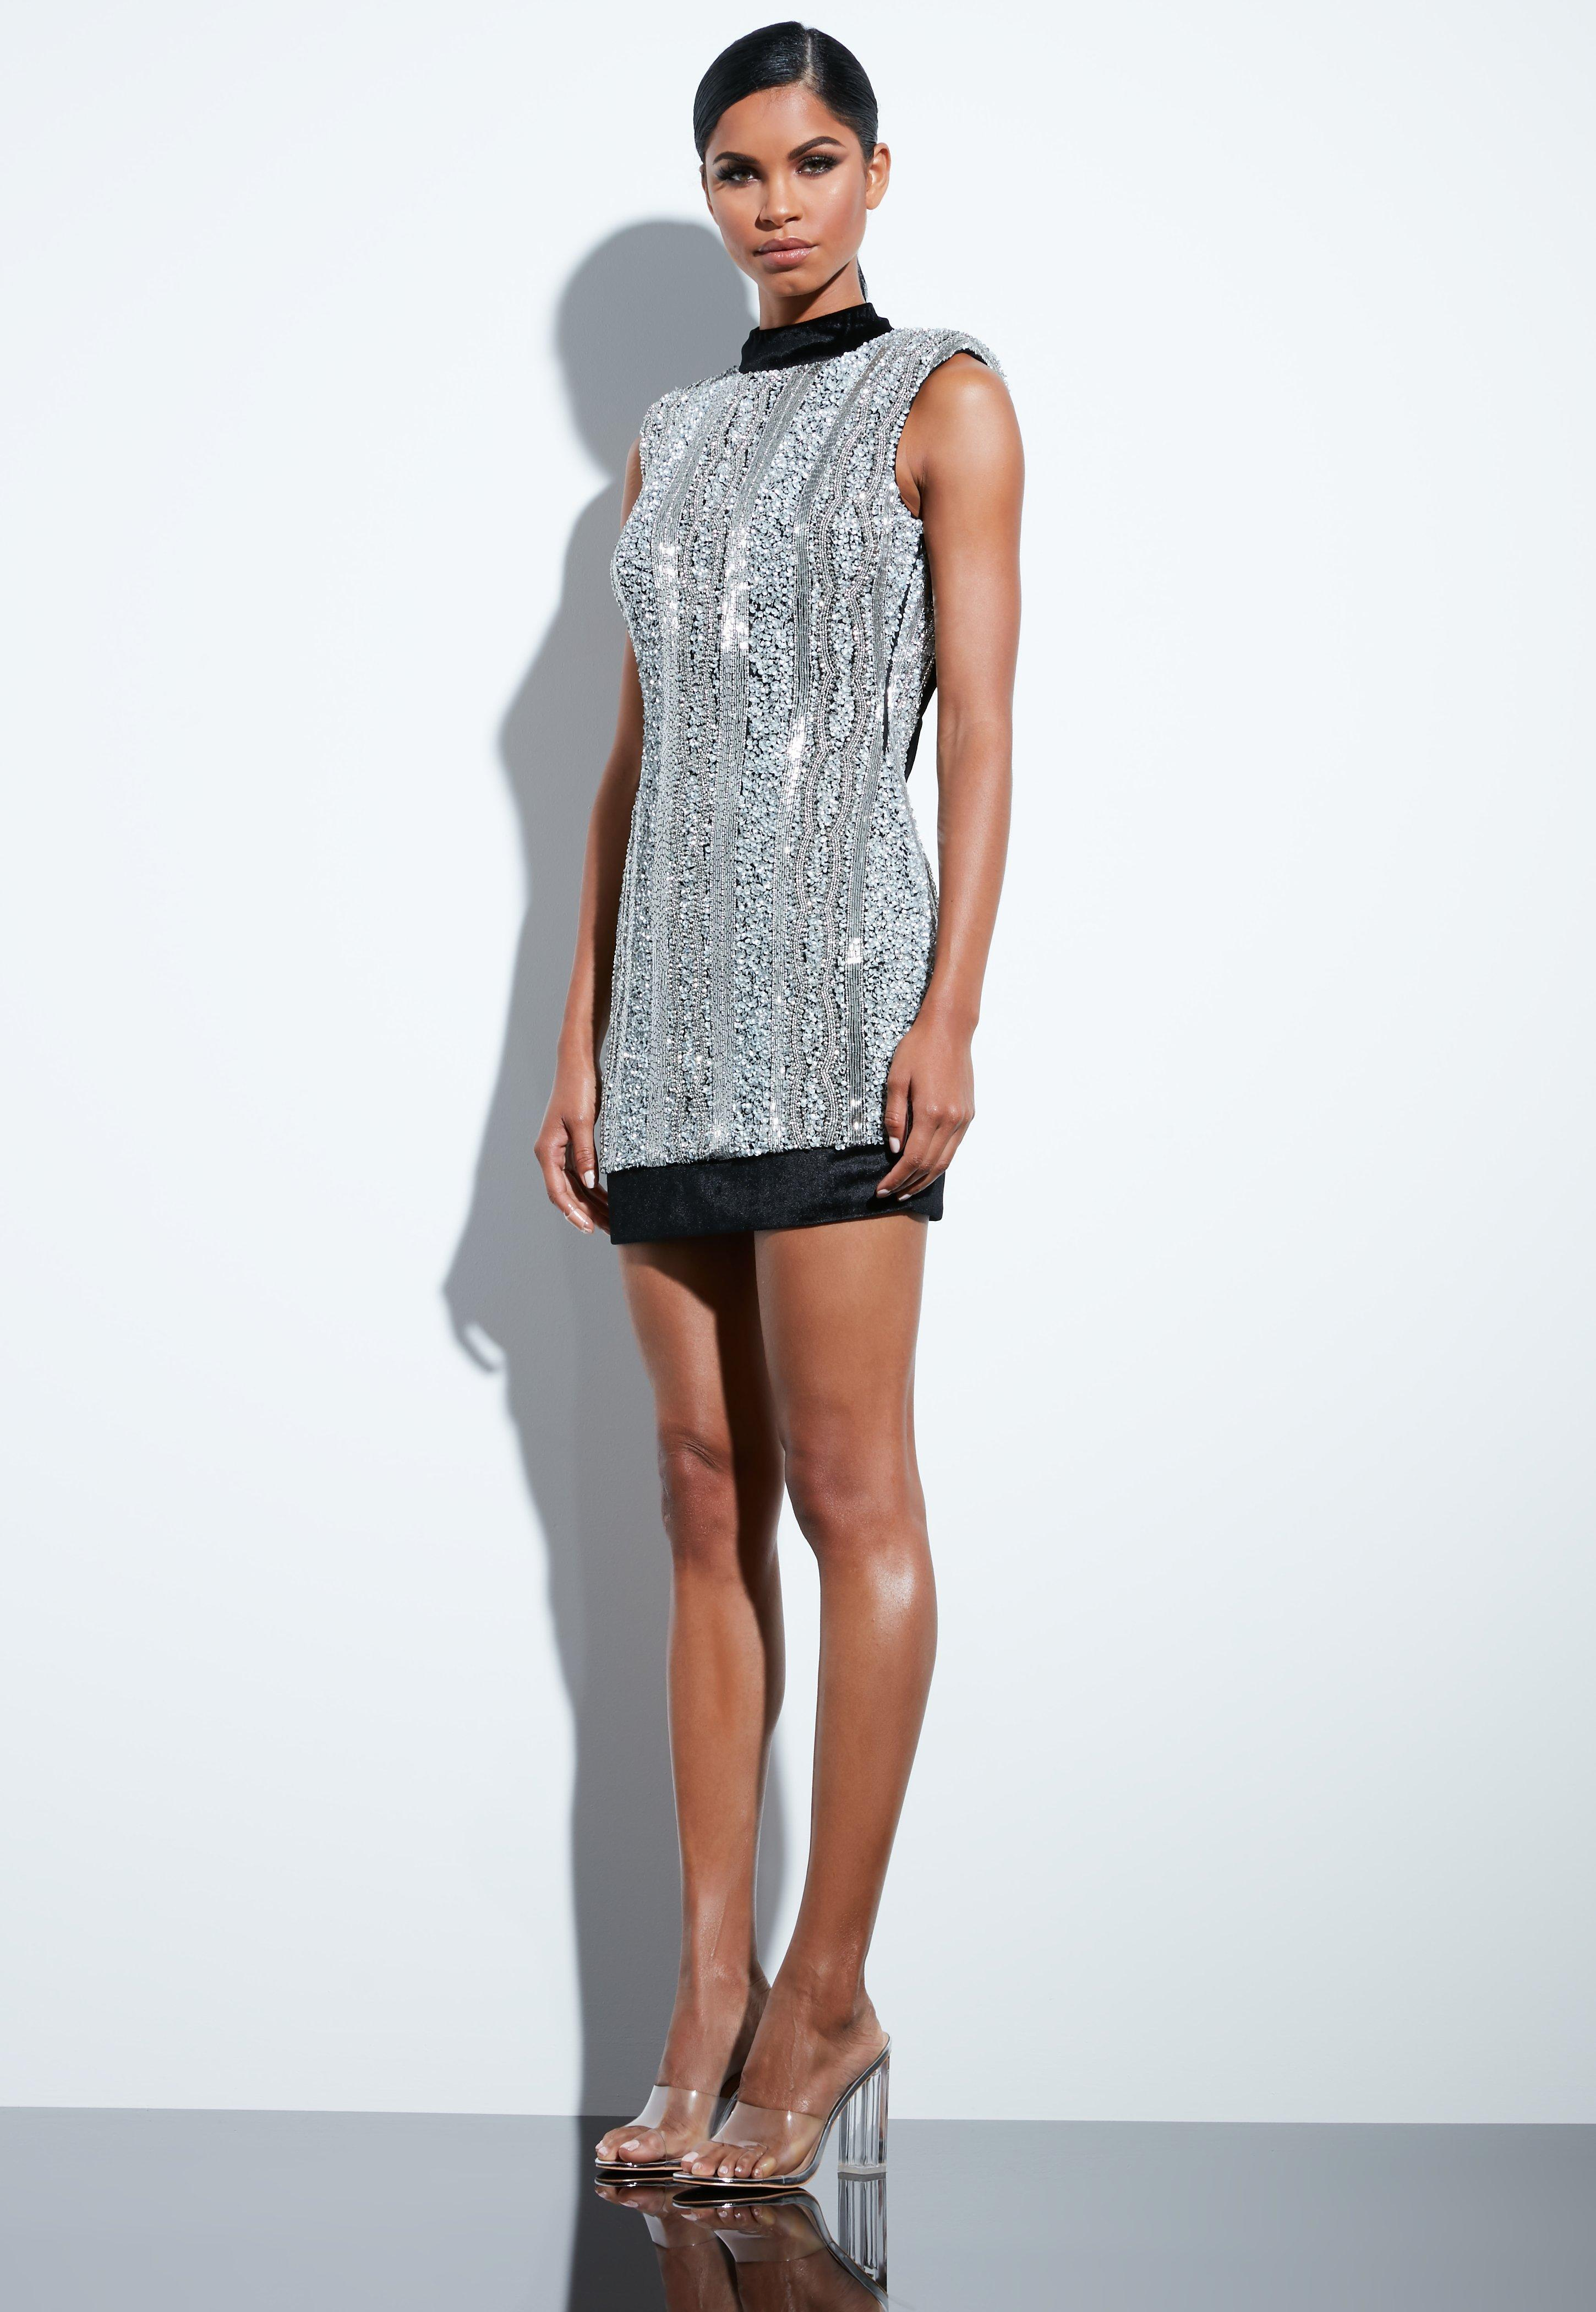 Lyst - Missguided Peace + Love Silver Embellished Sequin High Neck ... 8d564bbcf3c